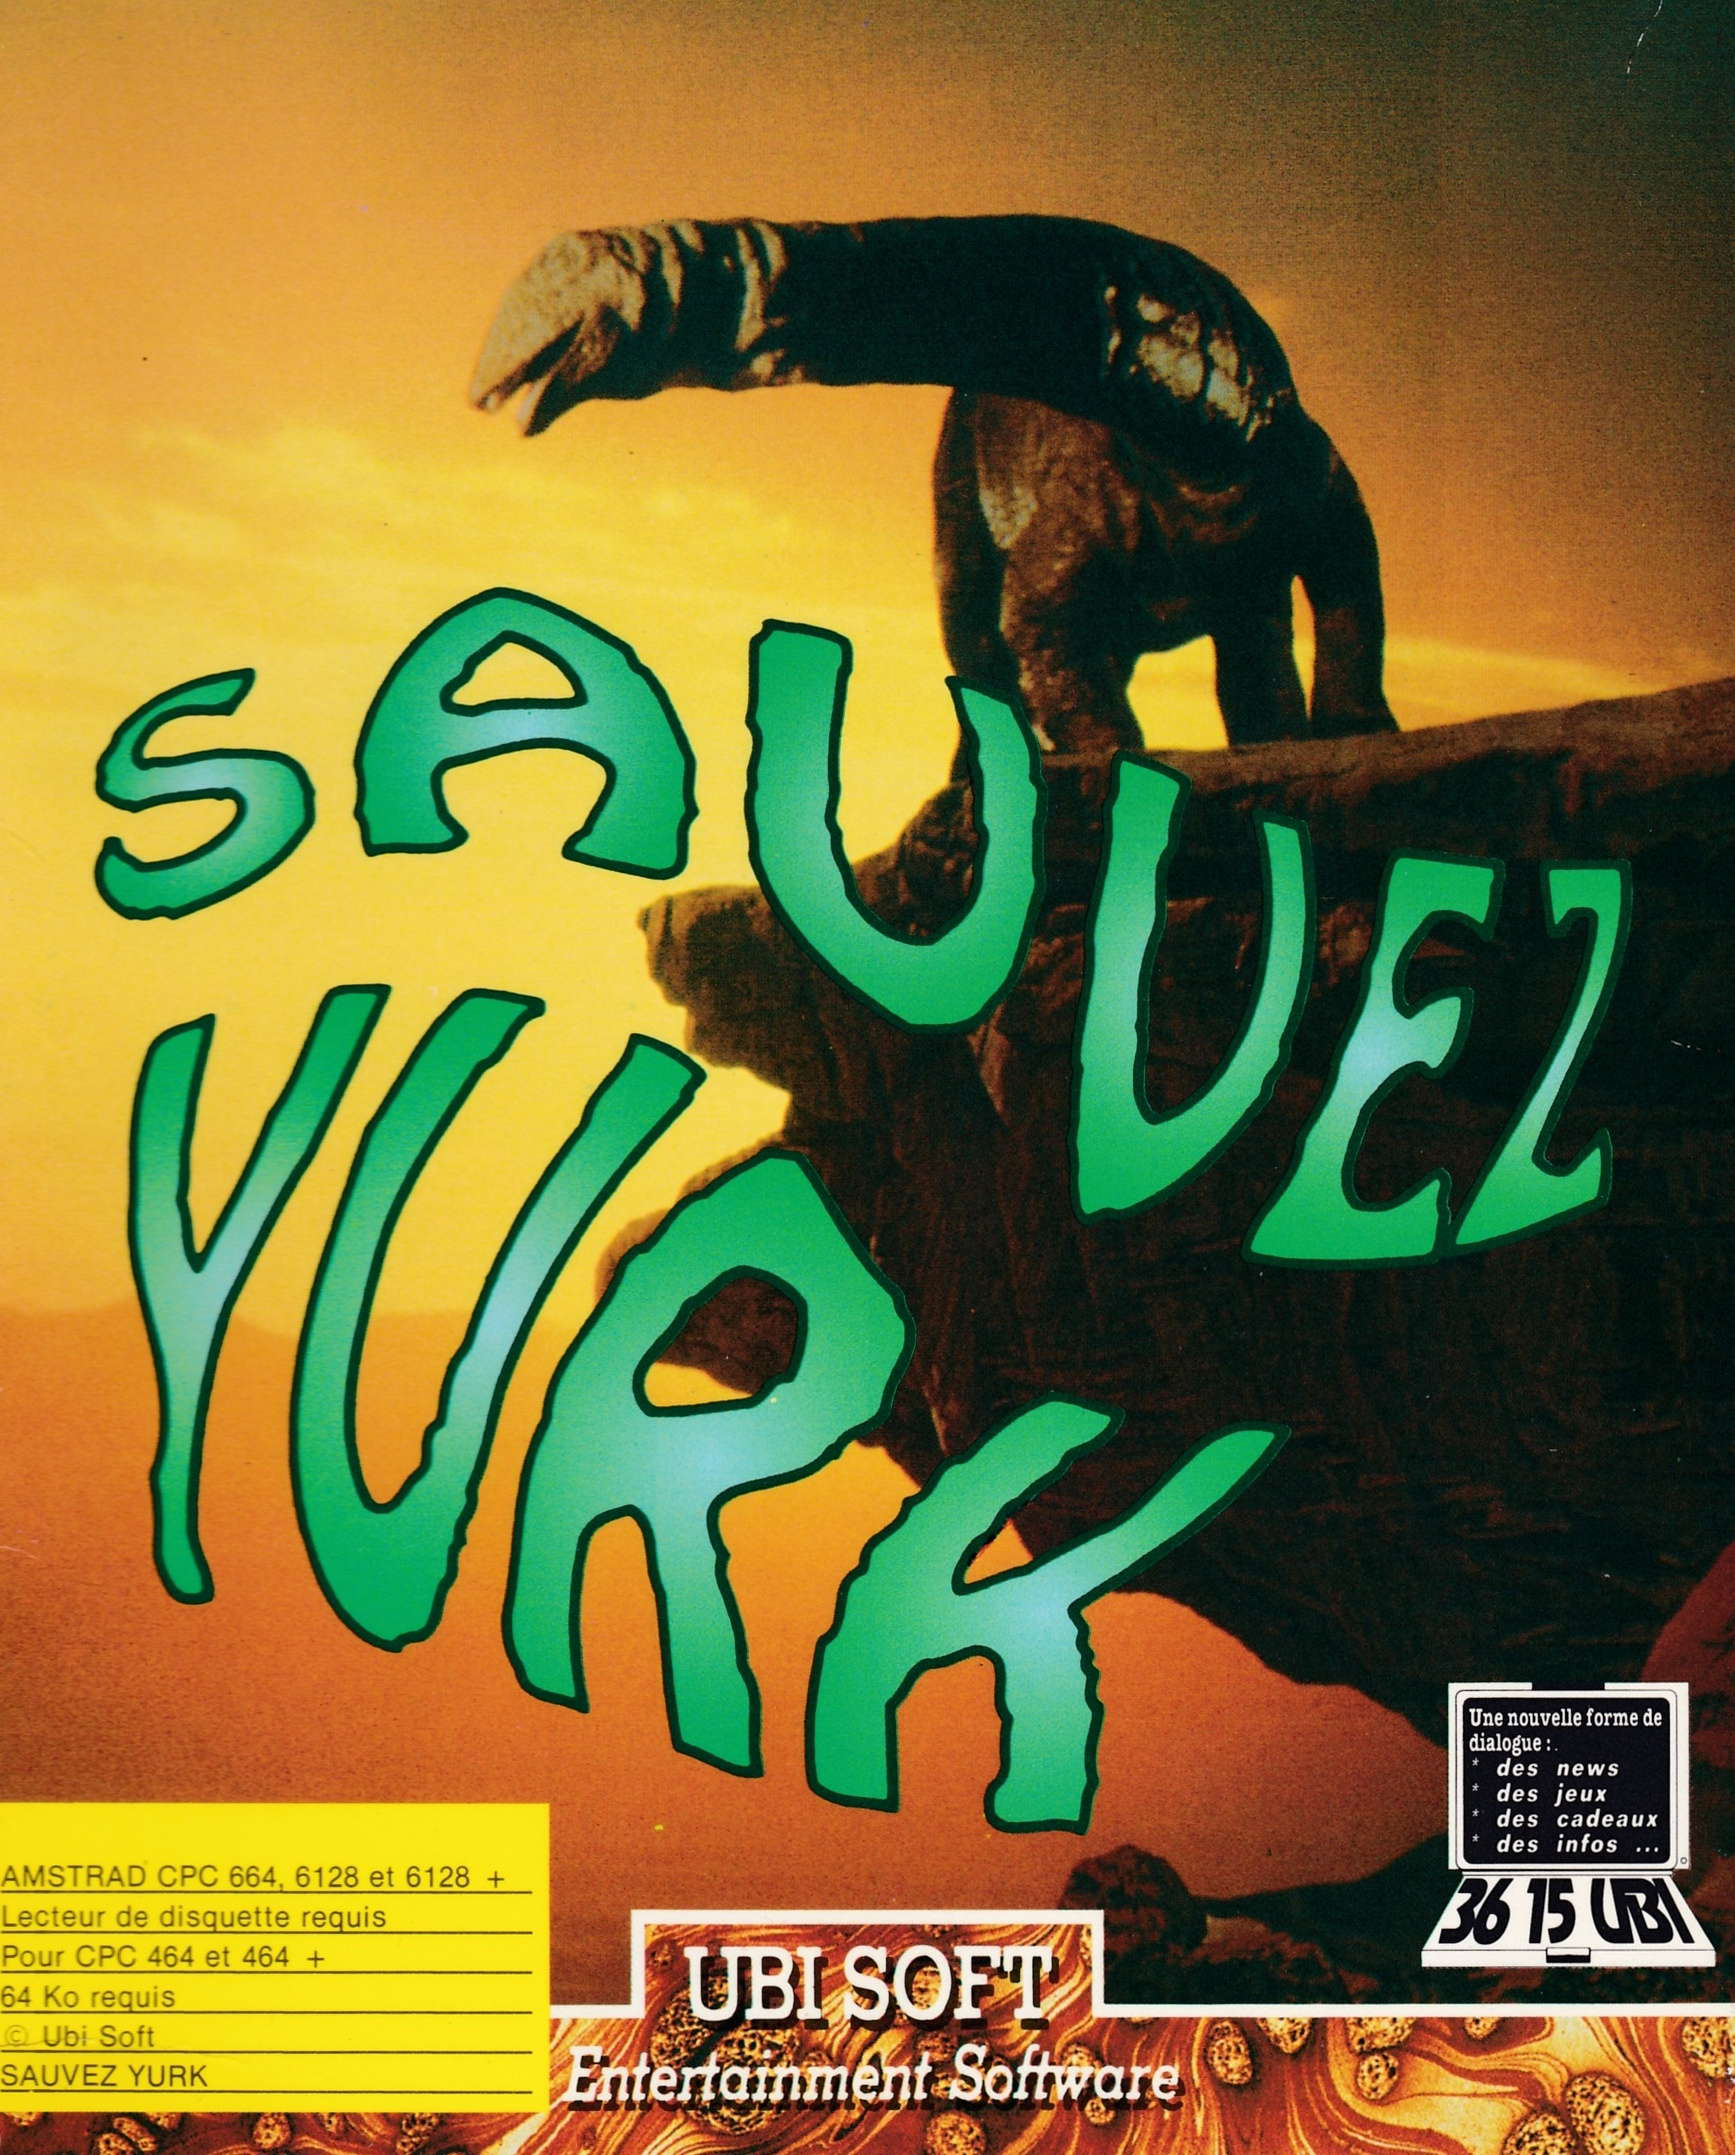 cover of the Amstrad CPC game Sauvez Yurk  by GameBase CPC